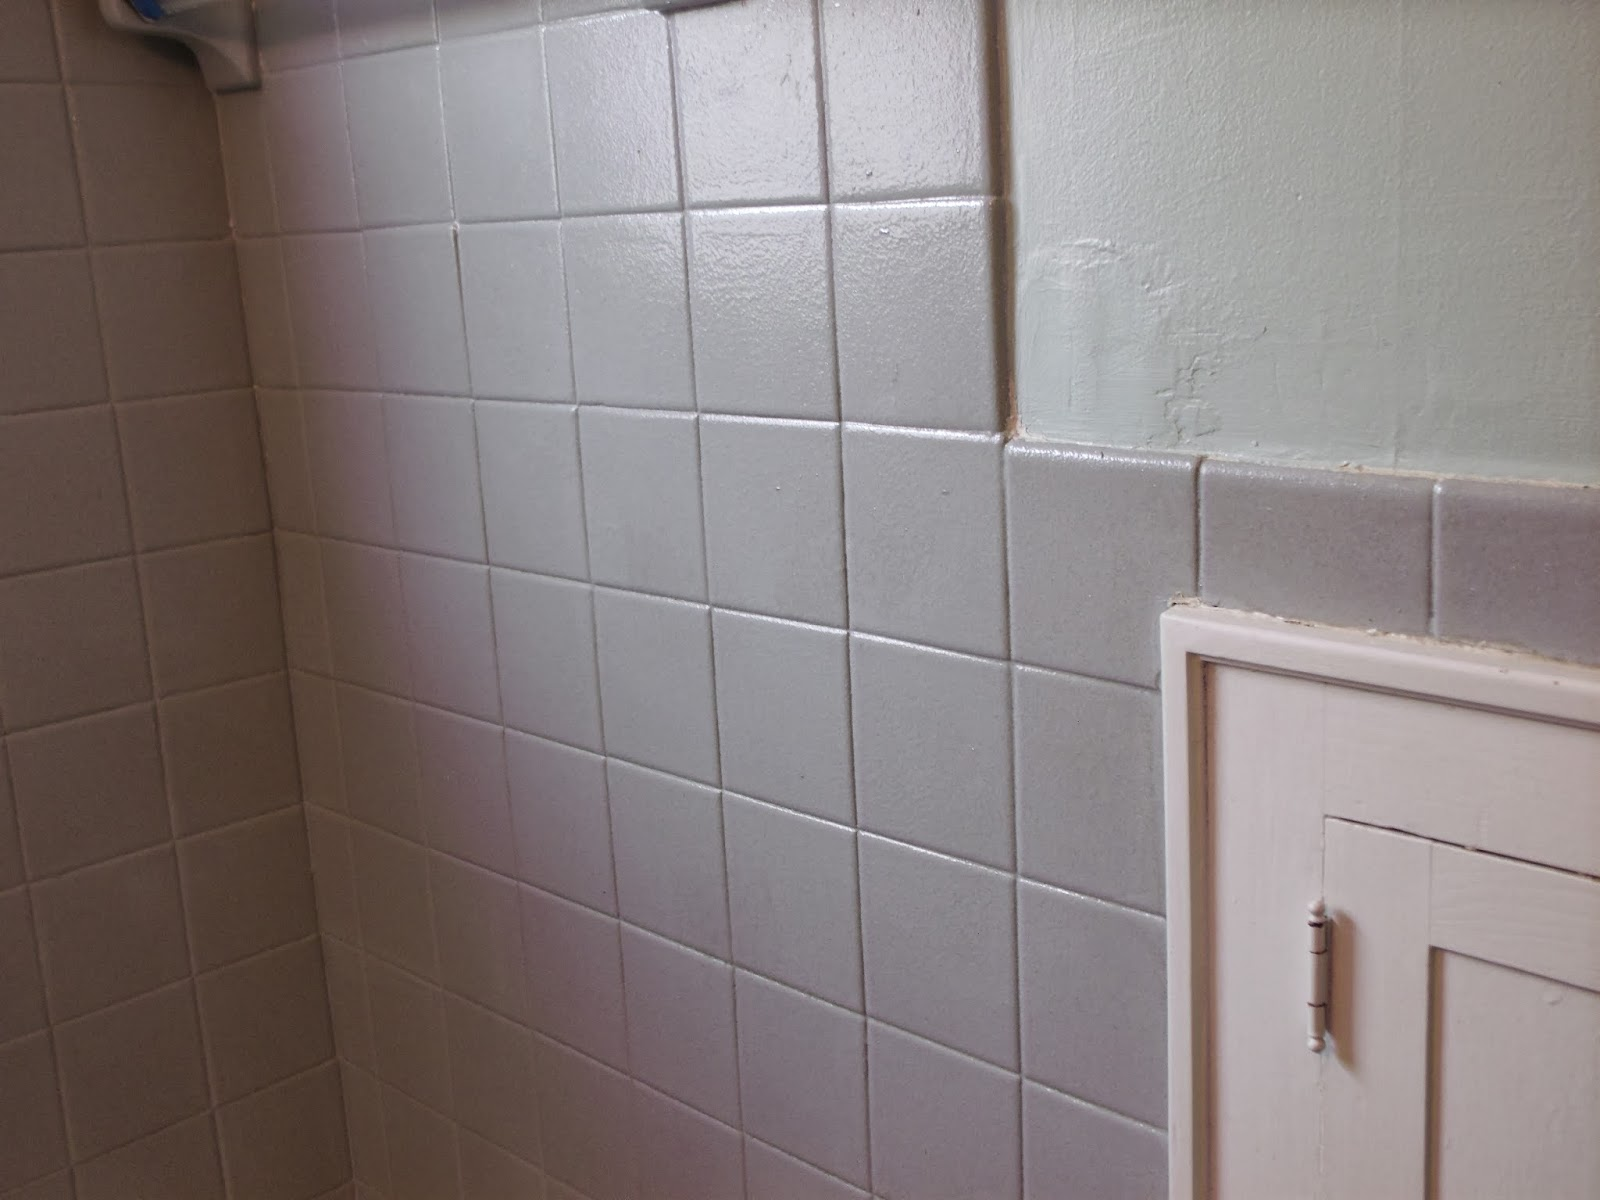 Tile Transformations and Other Misadventures Over the Weekend ...